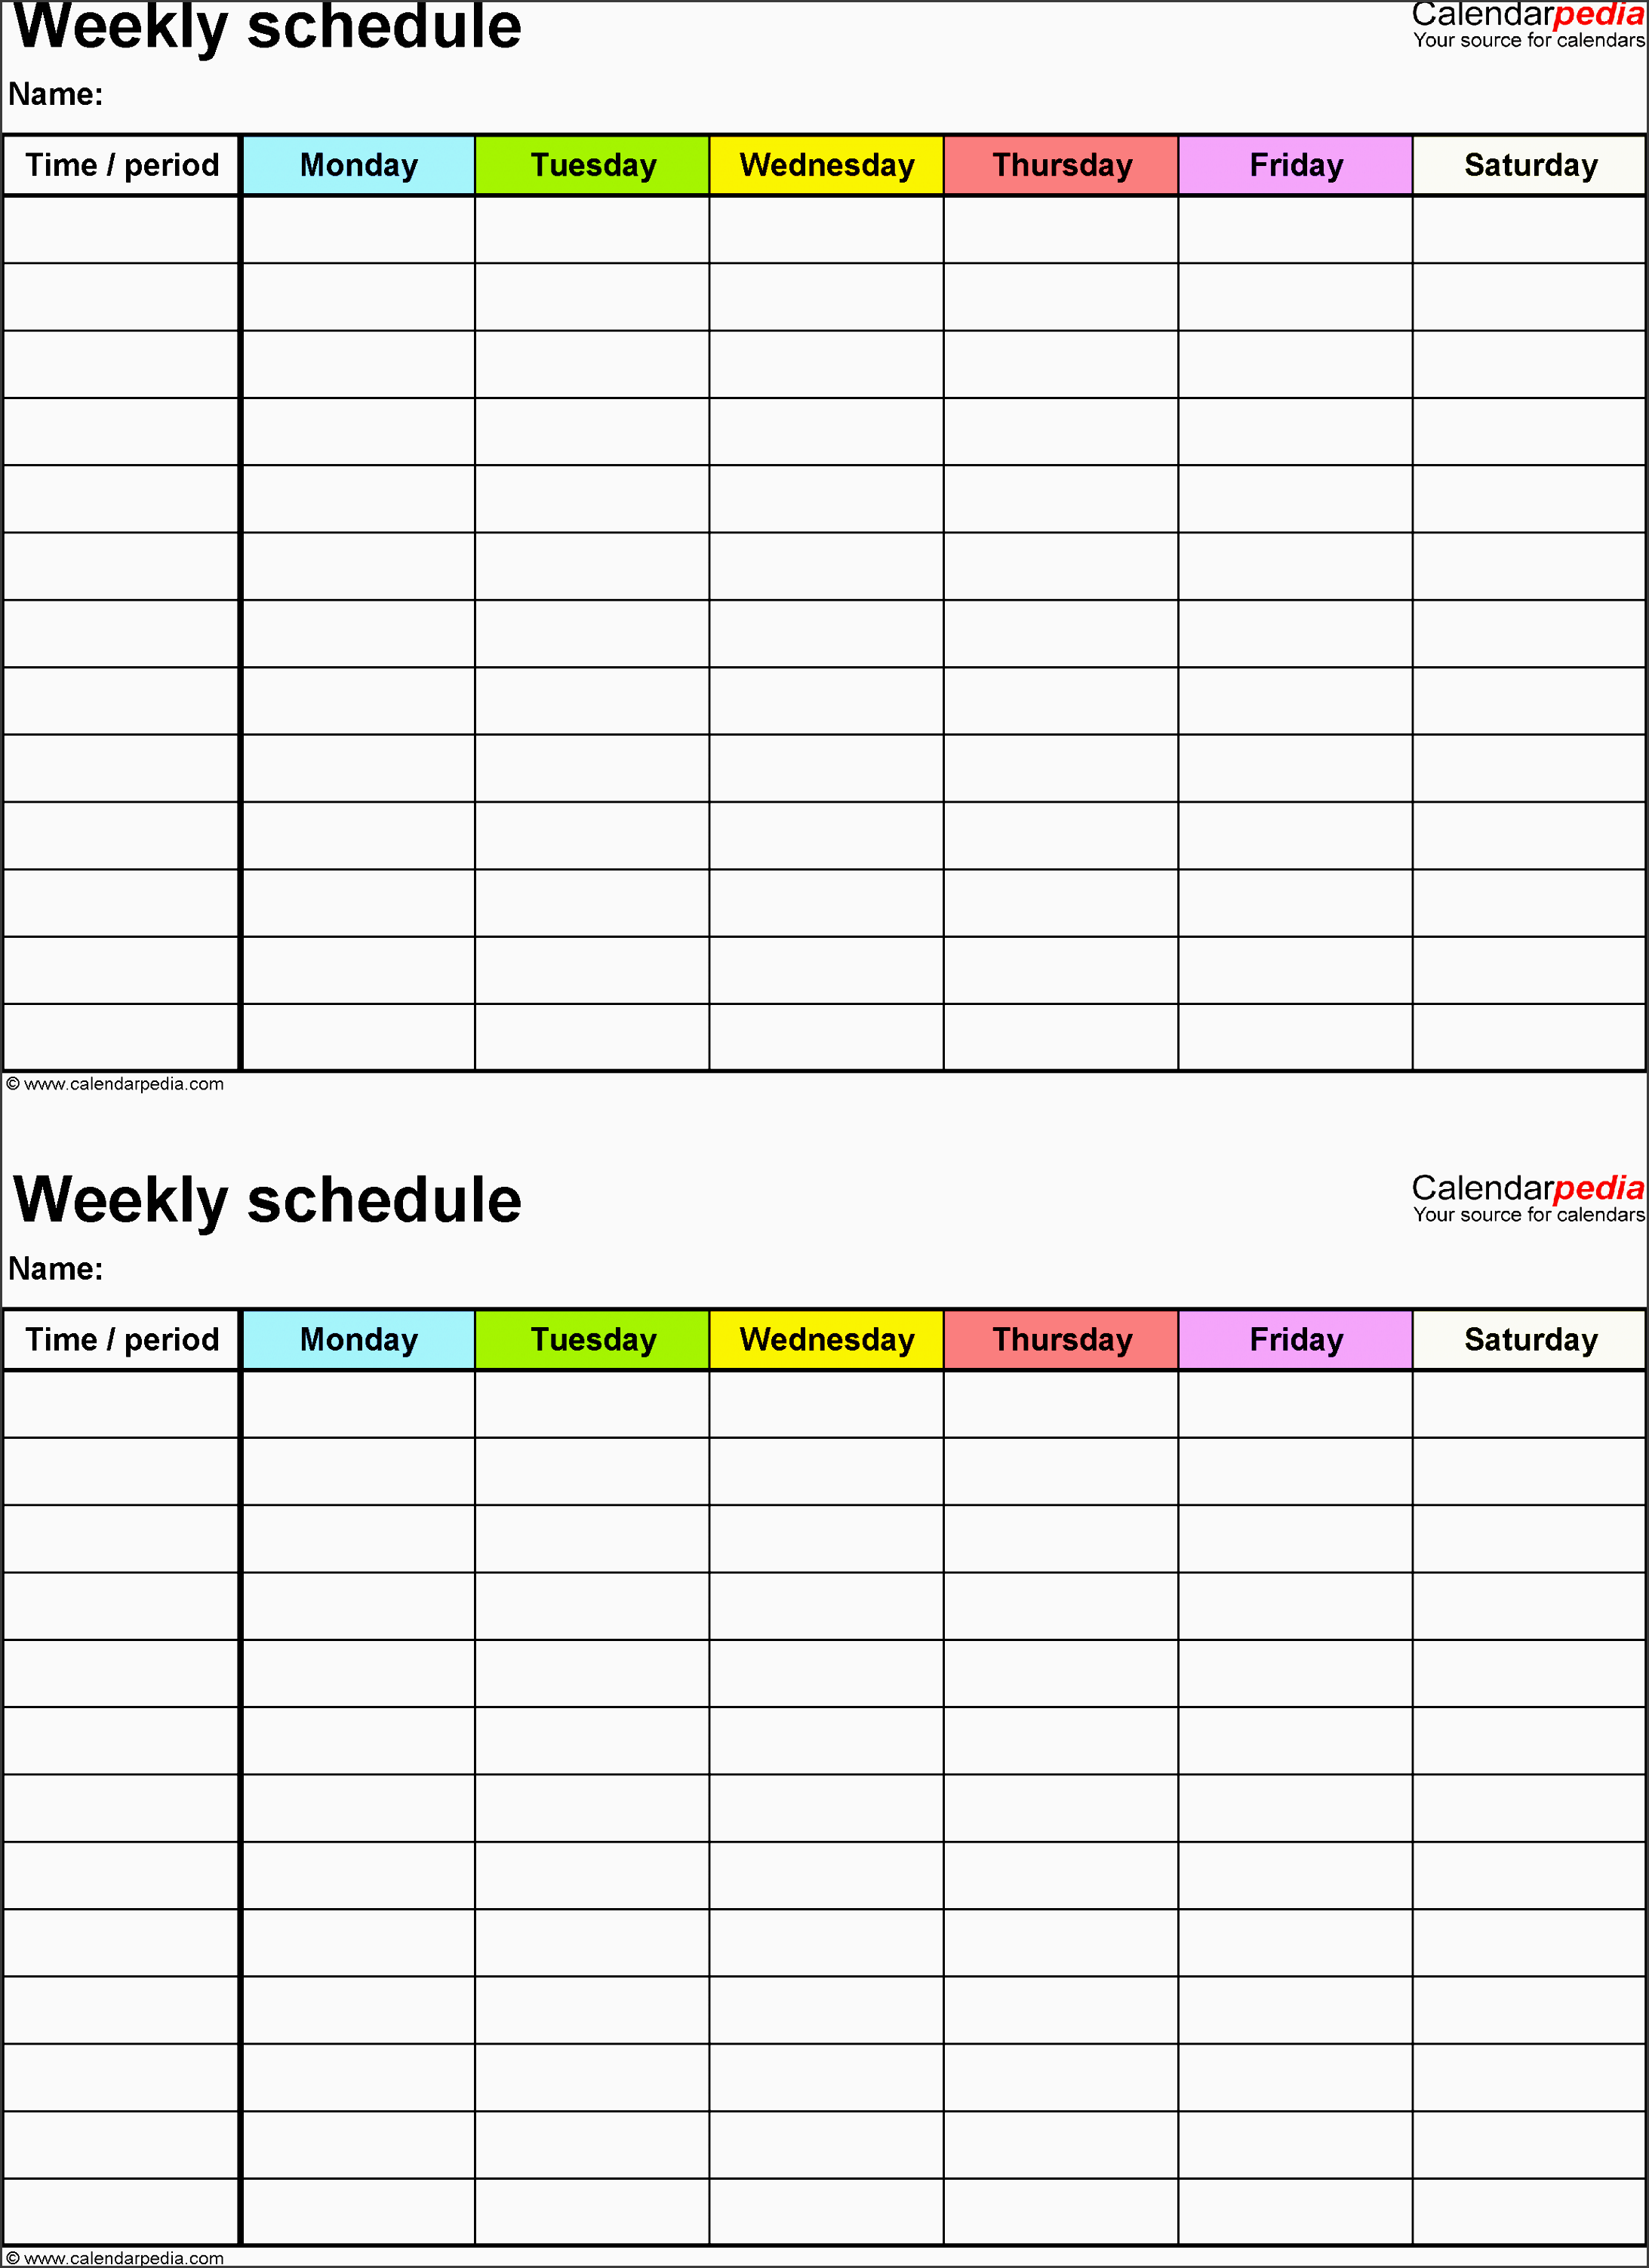 weekly schedule template for word version 9 2 schedules on one page portrait